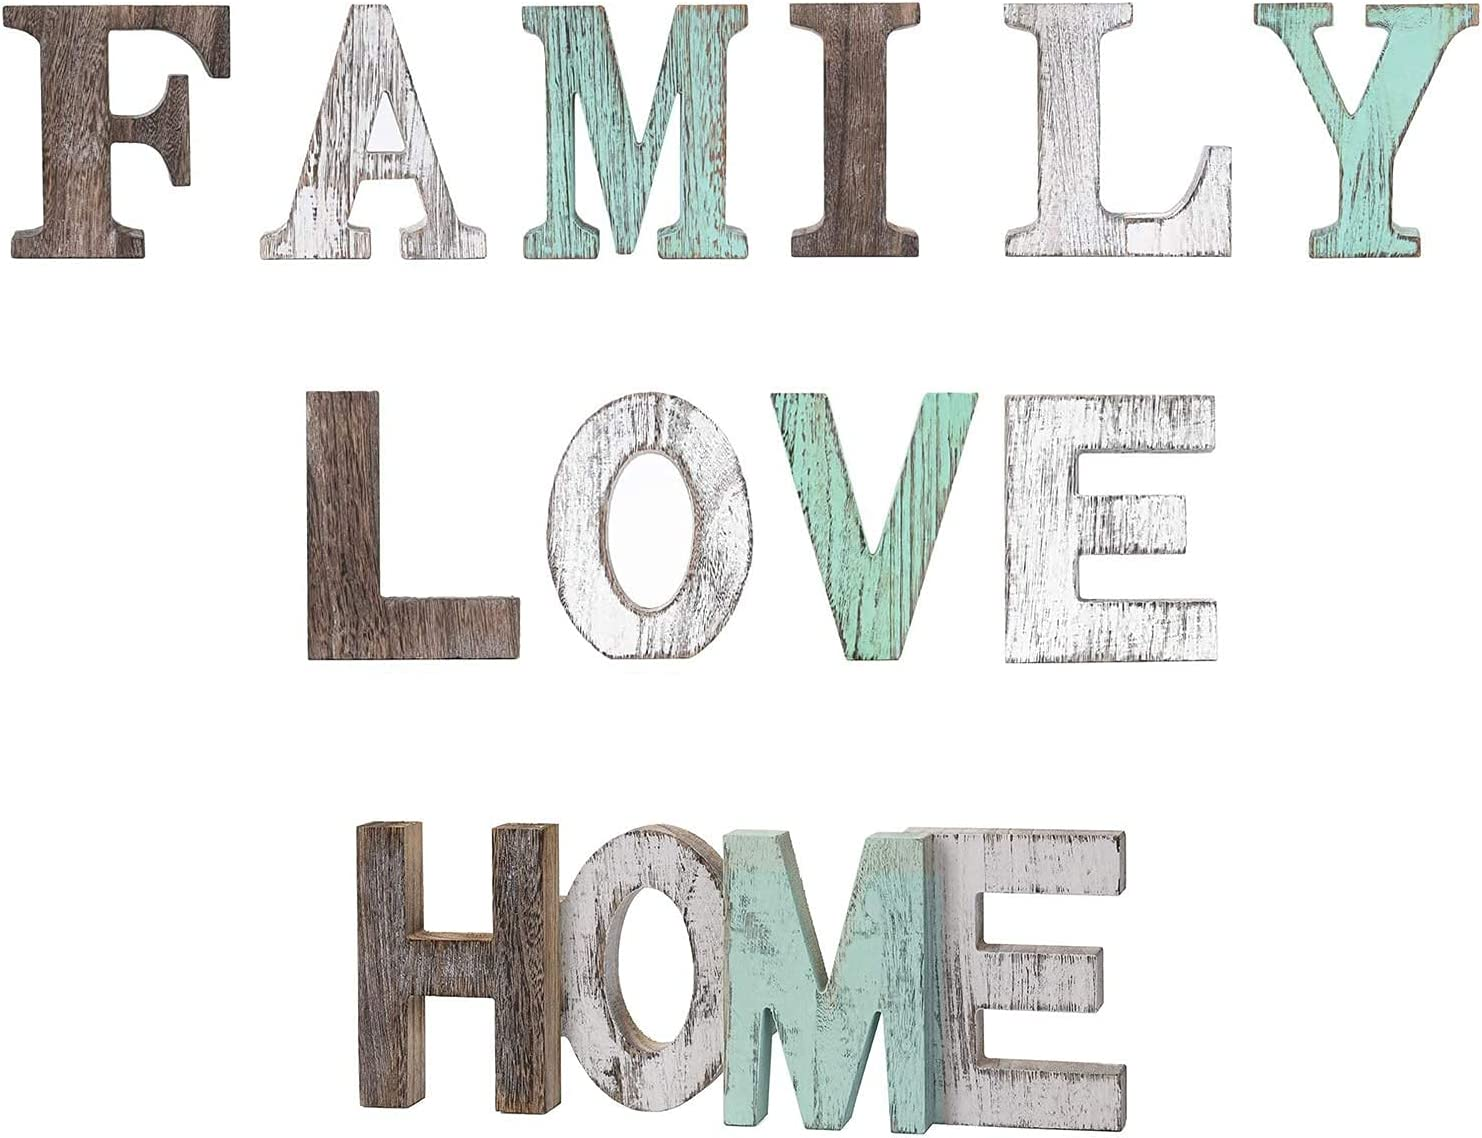 Home Sign Love Sign and Family Sign Set of 3, Wooden Blocks Letters Cutout Table Centerpiece Green Wall Decor, Gift for Mother's Day, Thanksgiving, Valentine